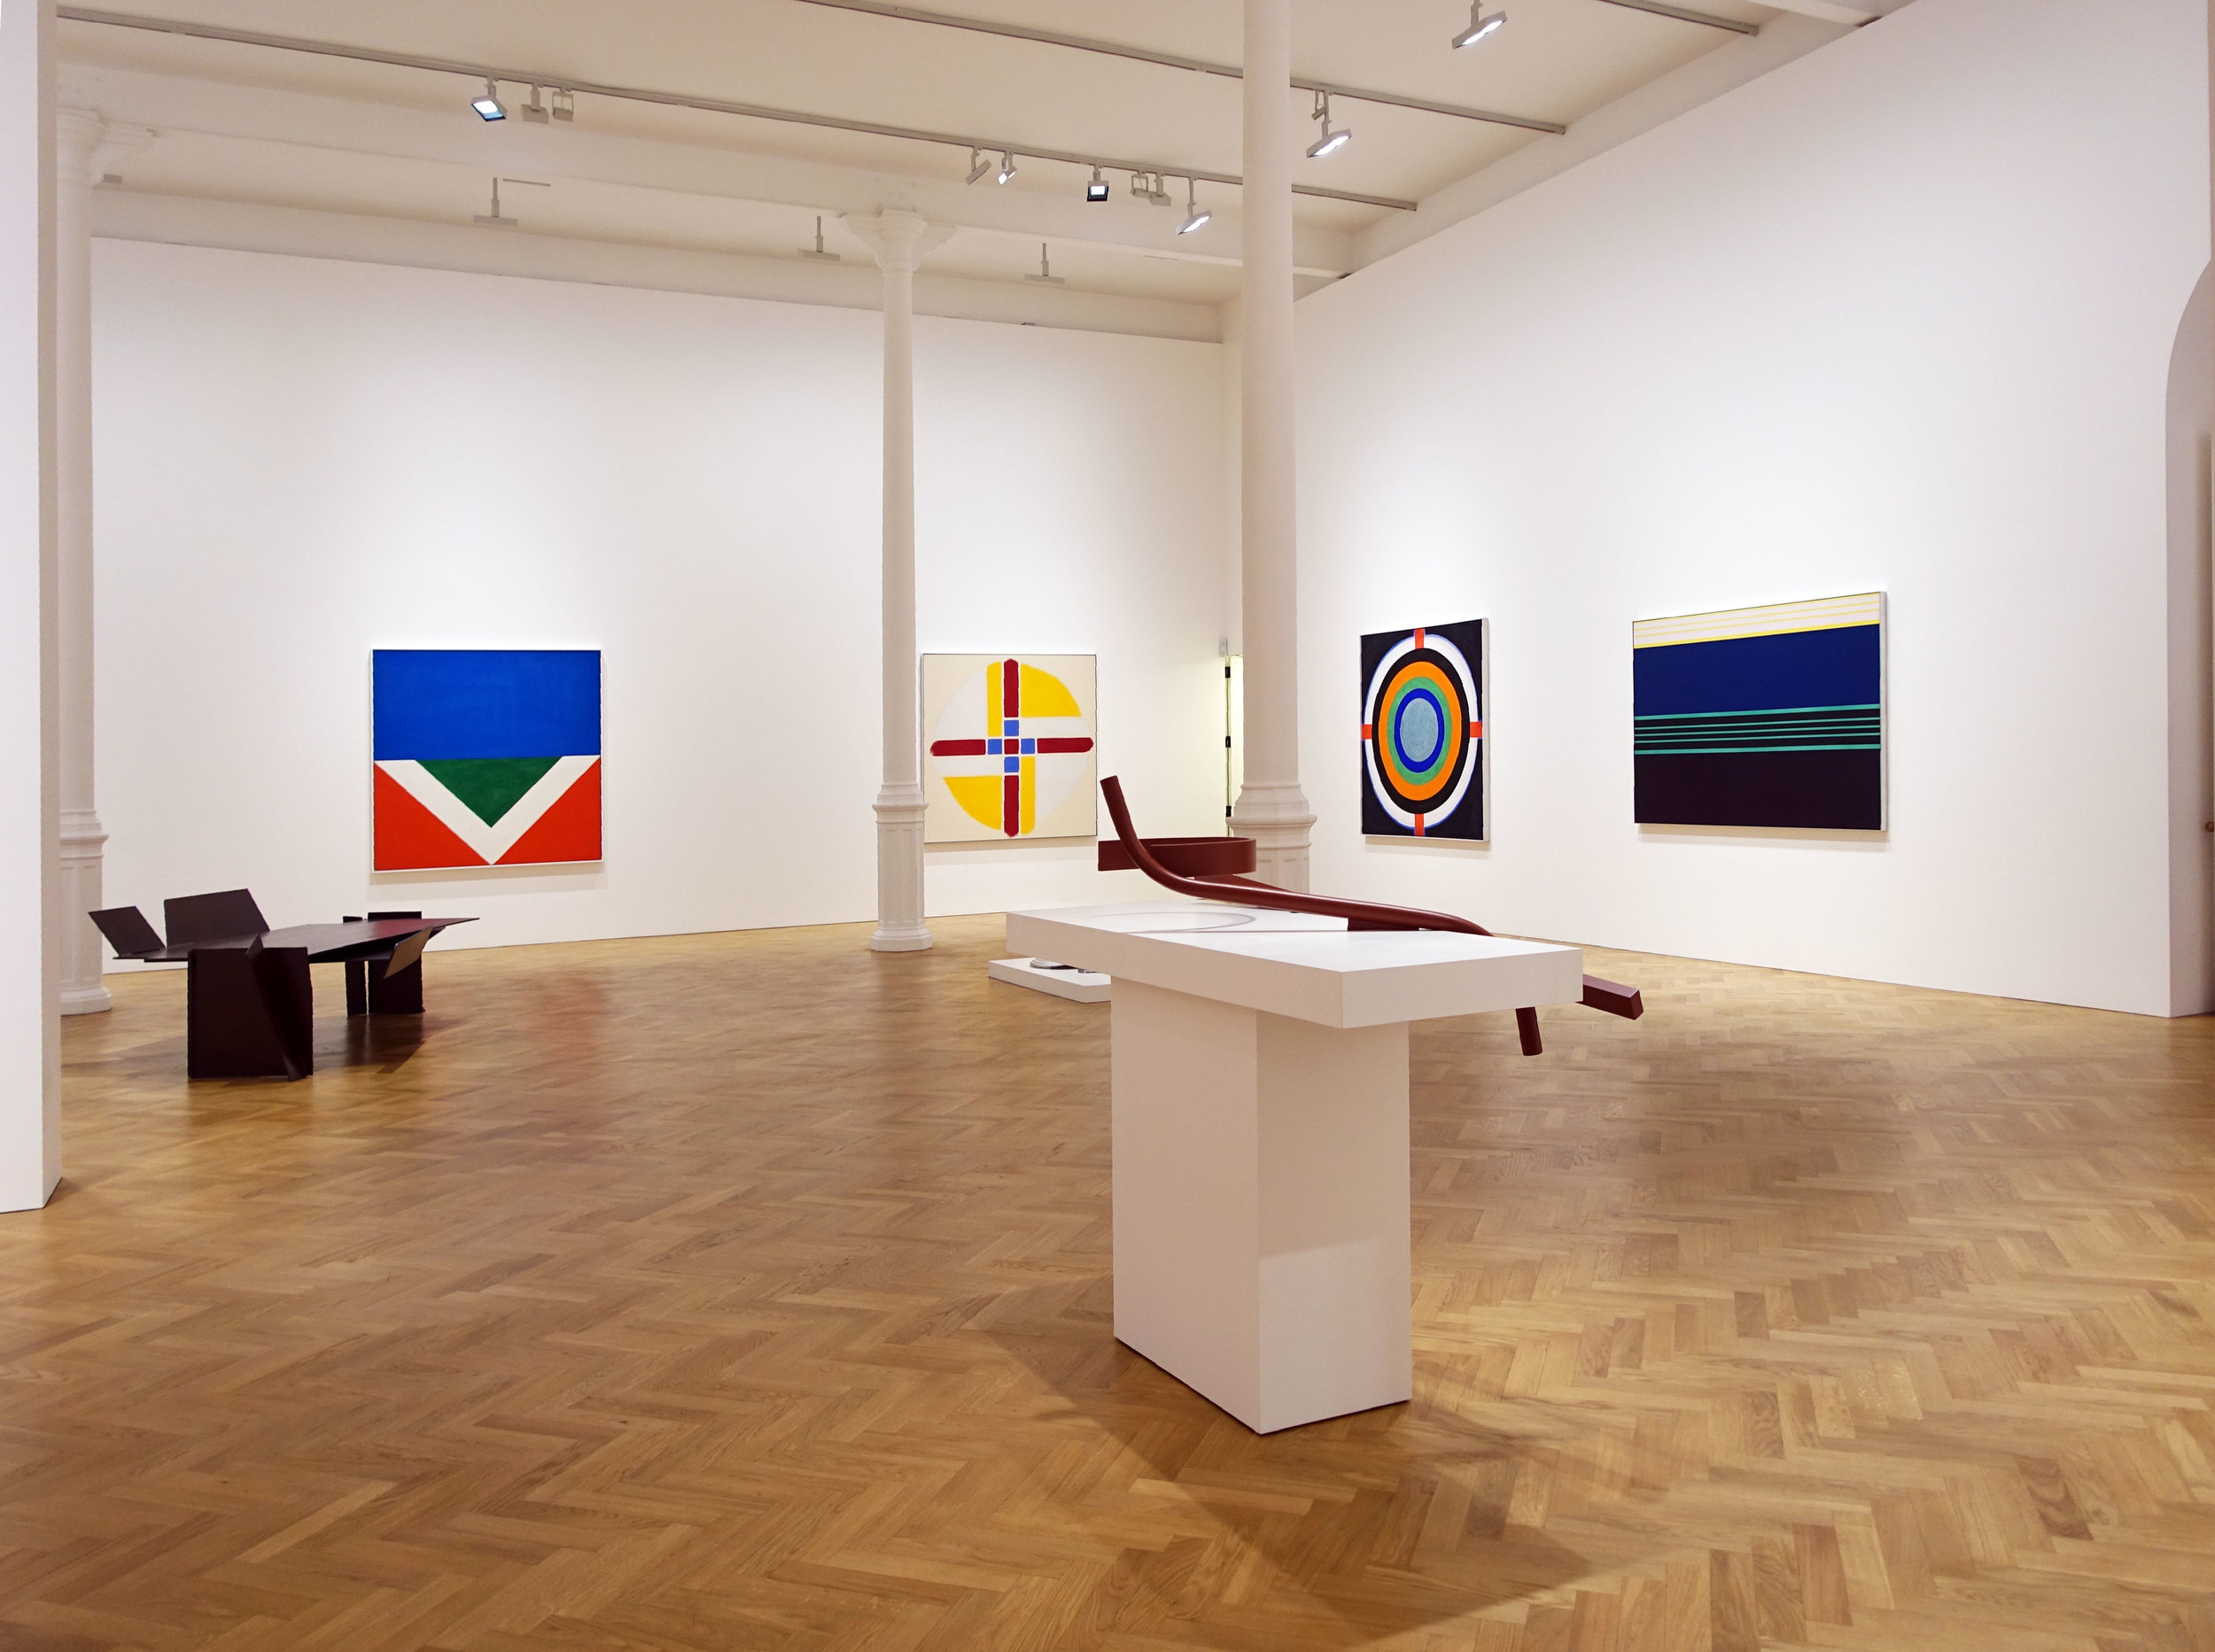 Noland, Hoyland and Caro at Pace London